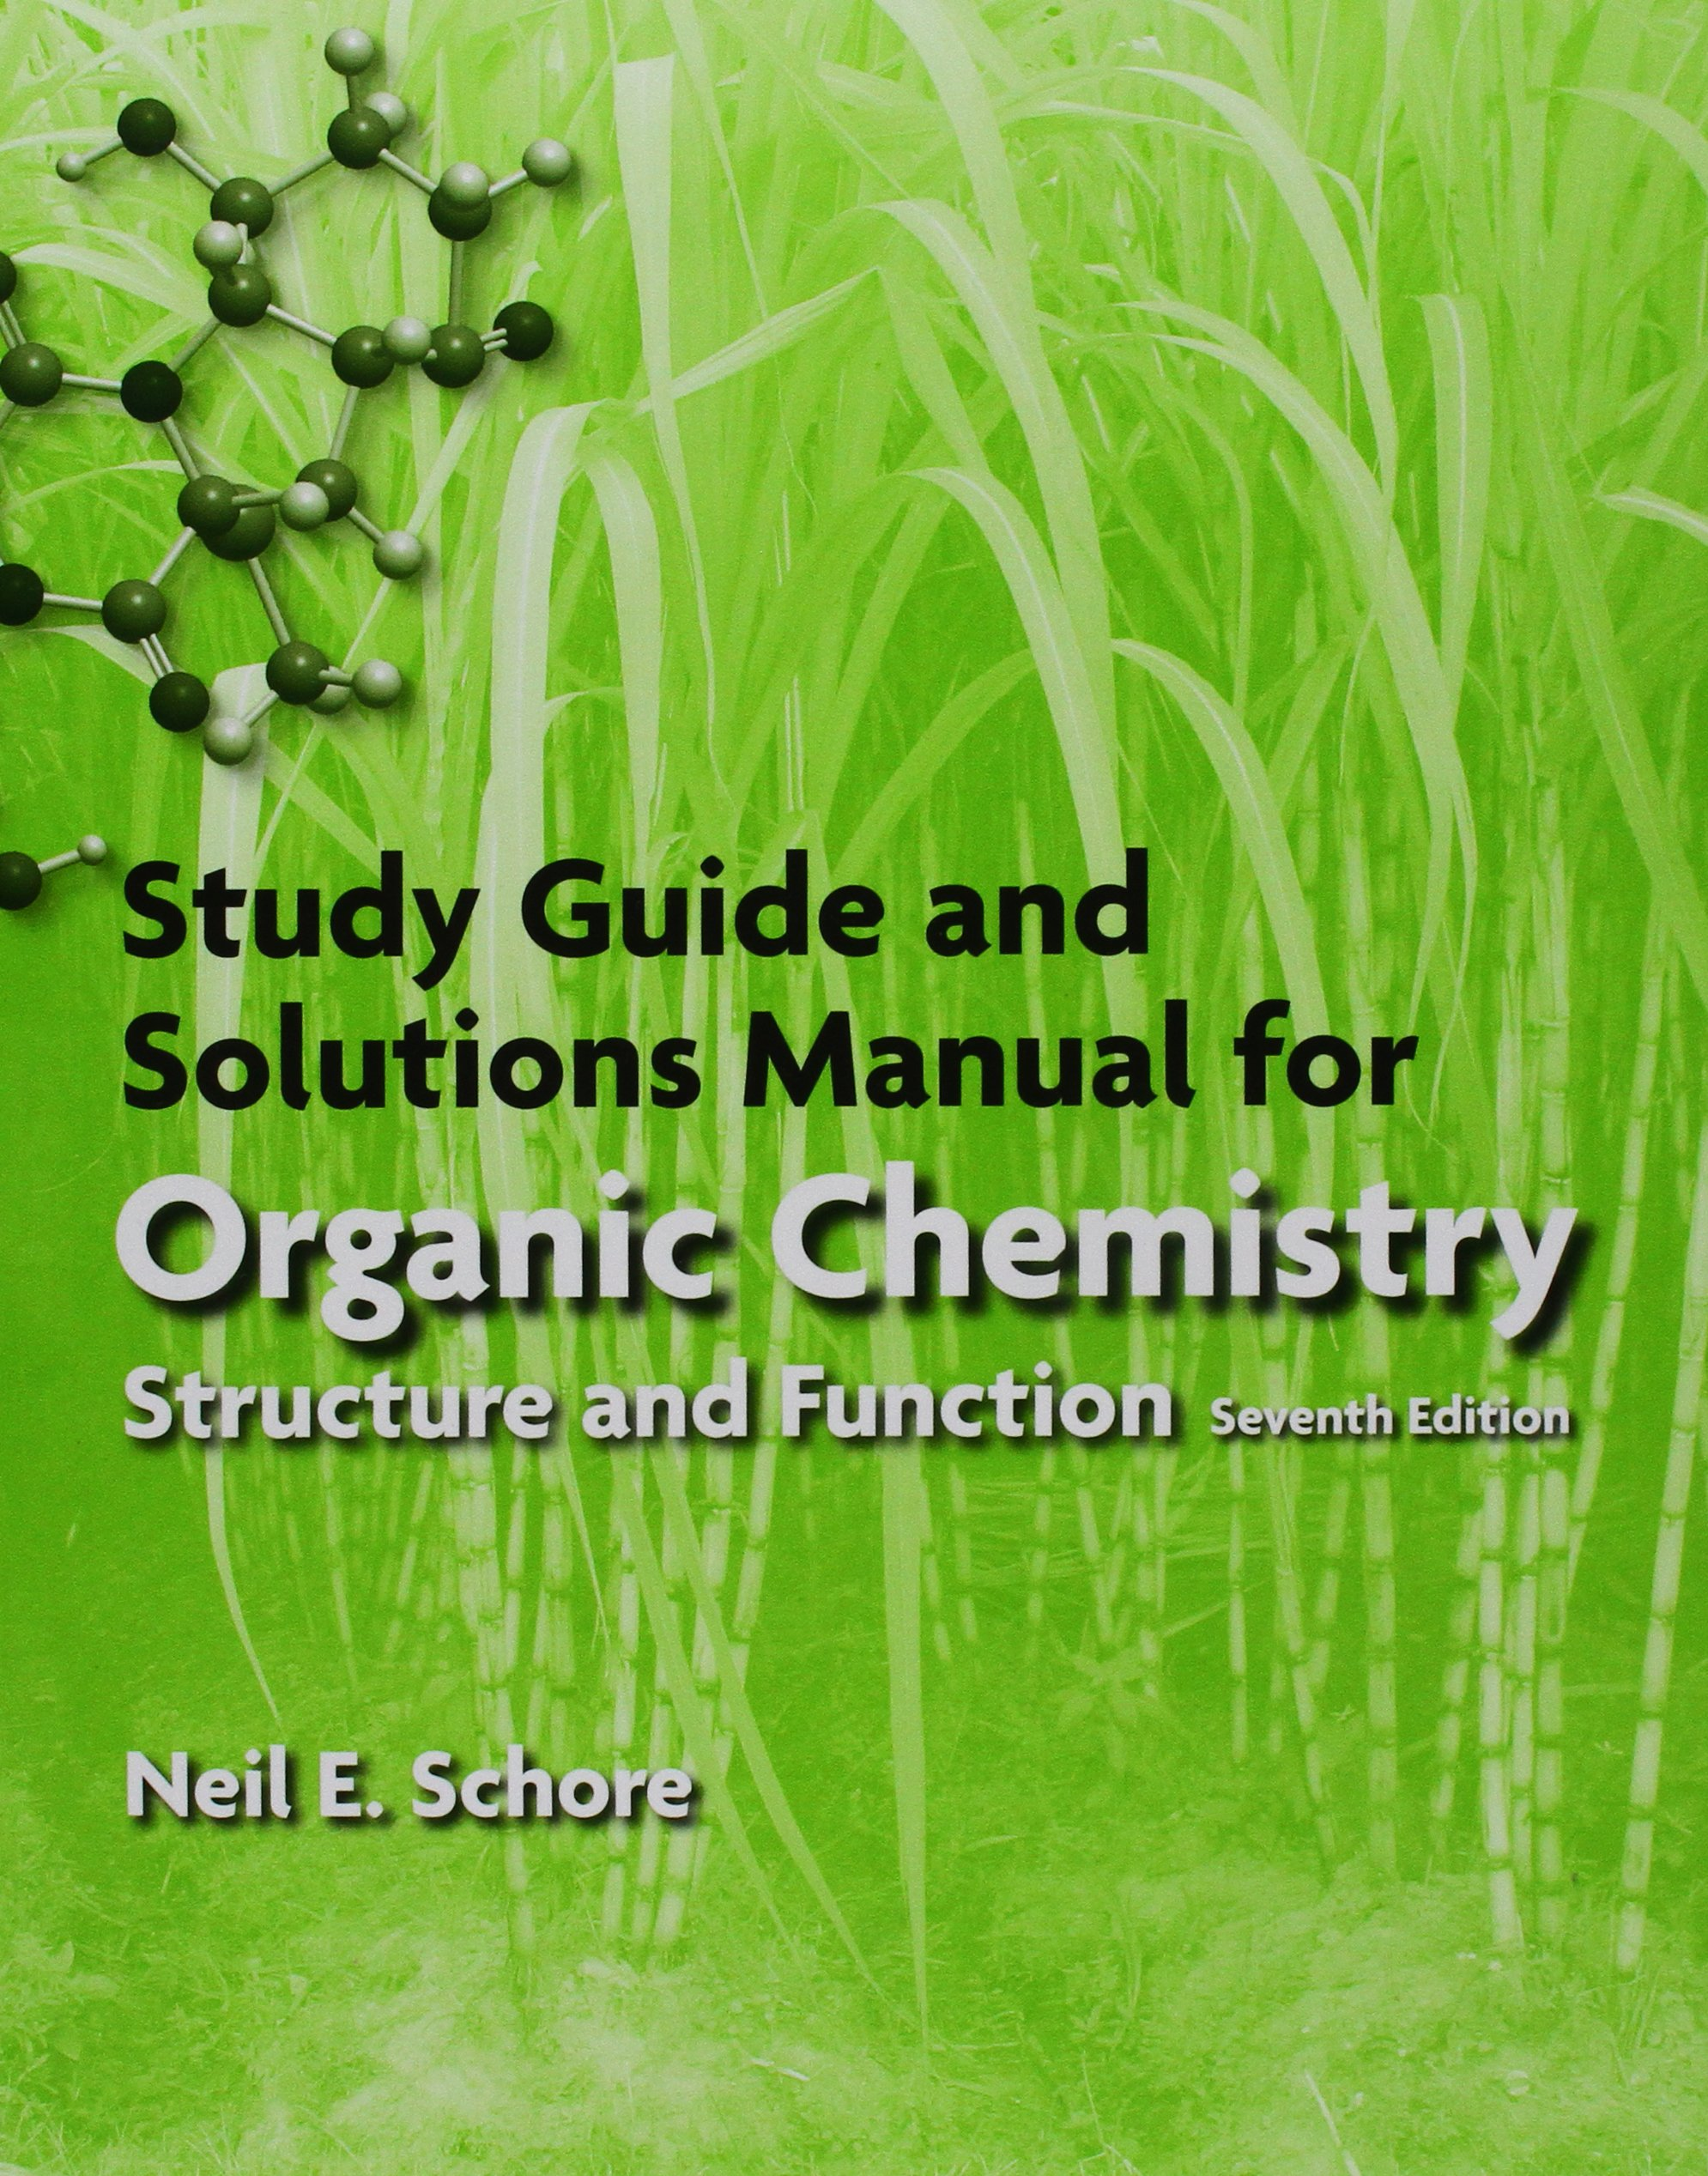 Buy Organic Chemistry + Study Guide/Solutions Manual for Organic Chemistry:  Structure and Function Book Online at Low Prices in India | Organic  Chemistry + ...